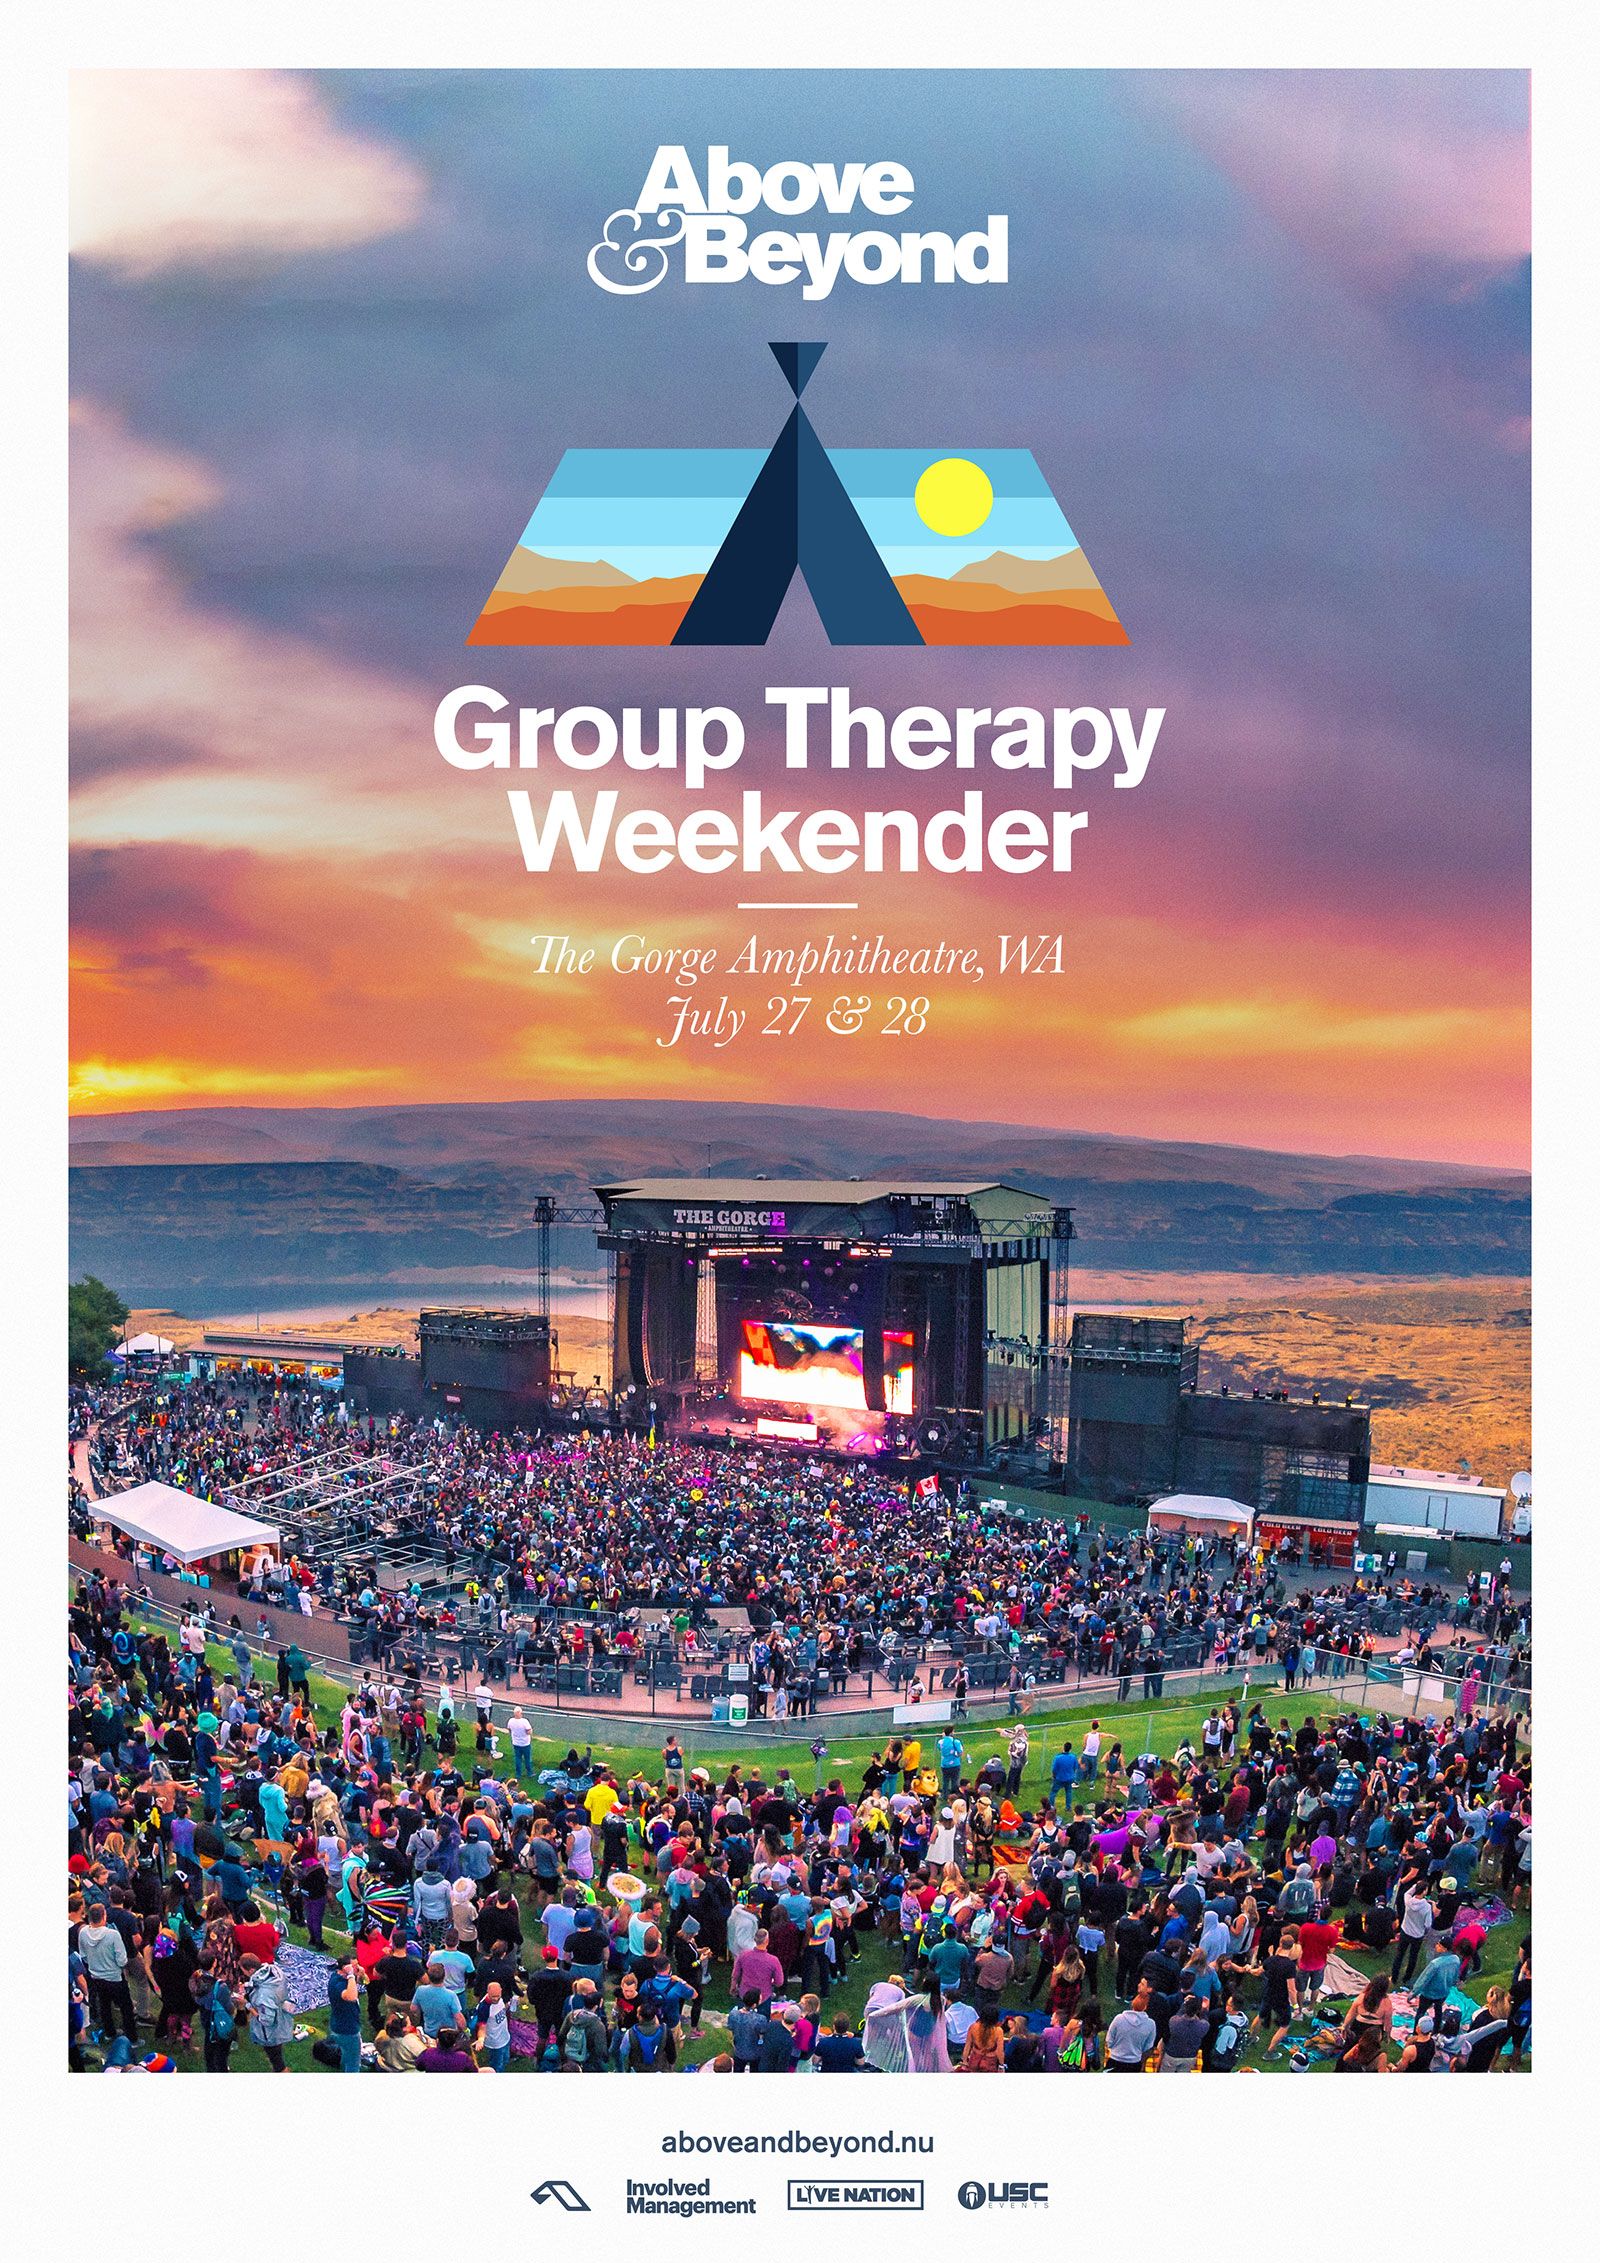 group-therapy-weekender-2019-above-and-beyond-oz-edm-flyer